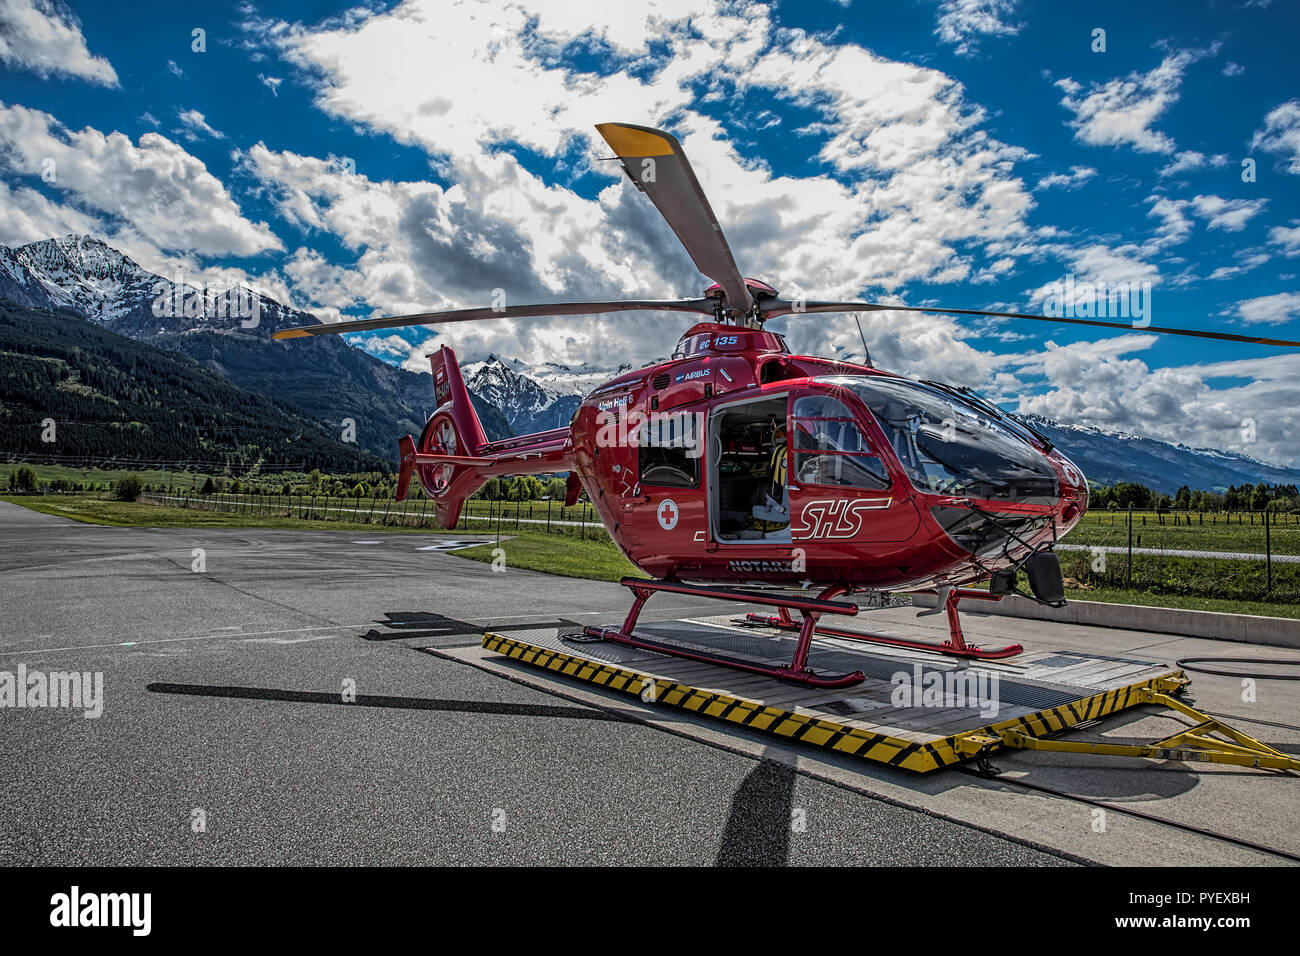 Airbuss EC135 Alpin Heli 6 at the Zell am See Aiirfield - Stock Image